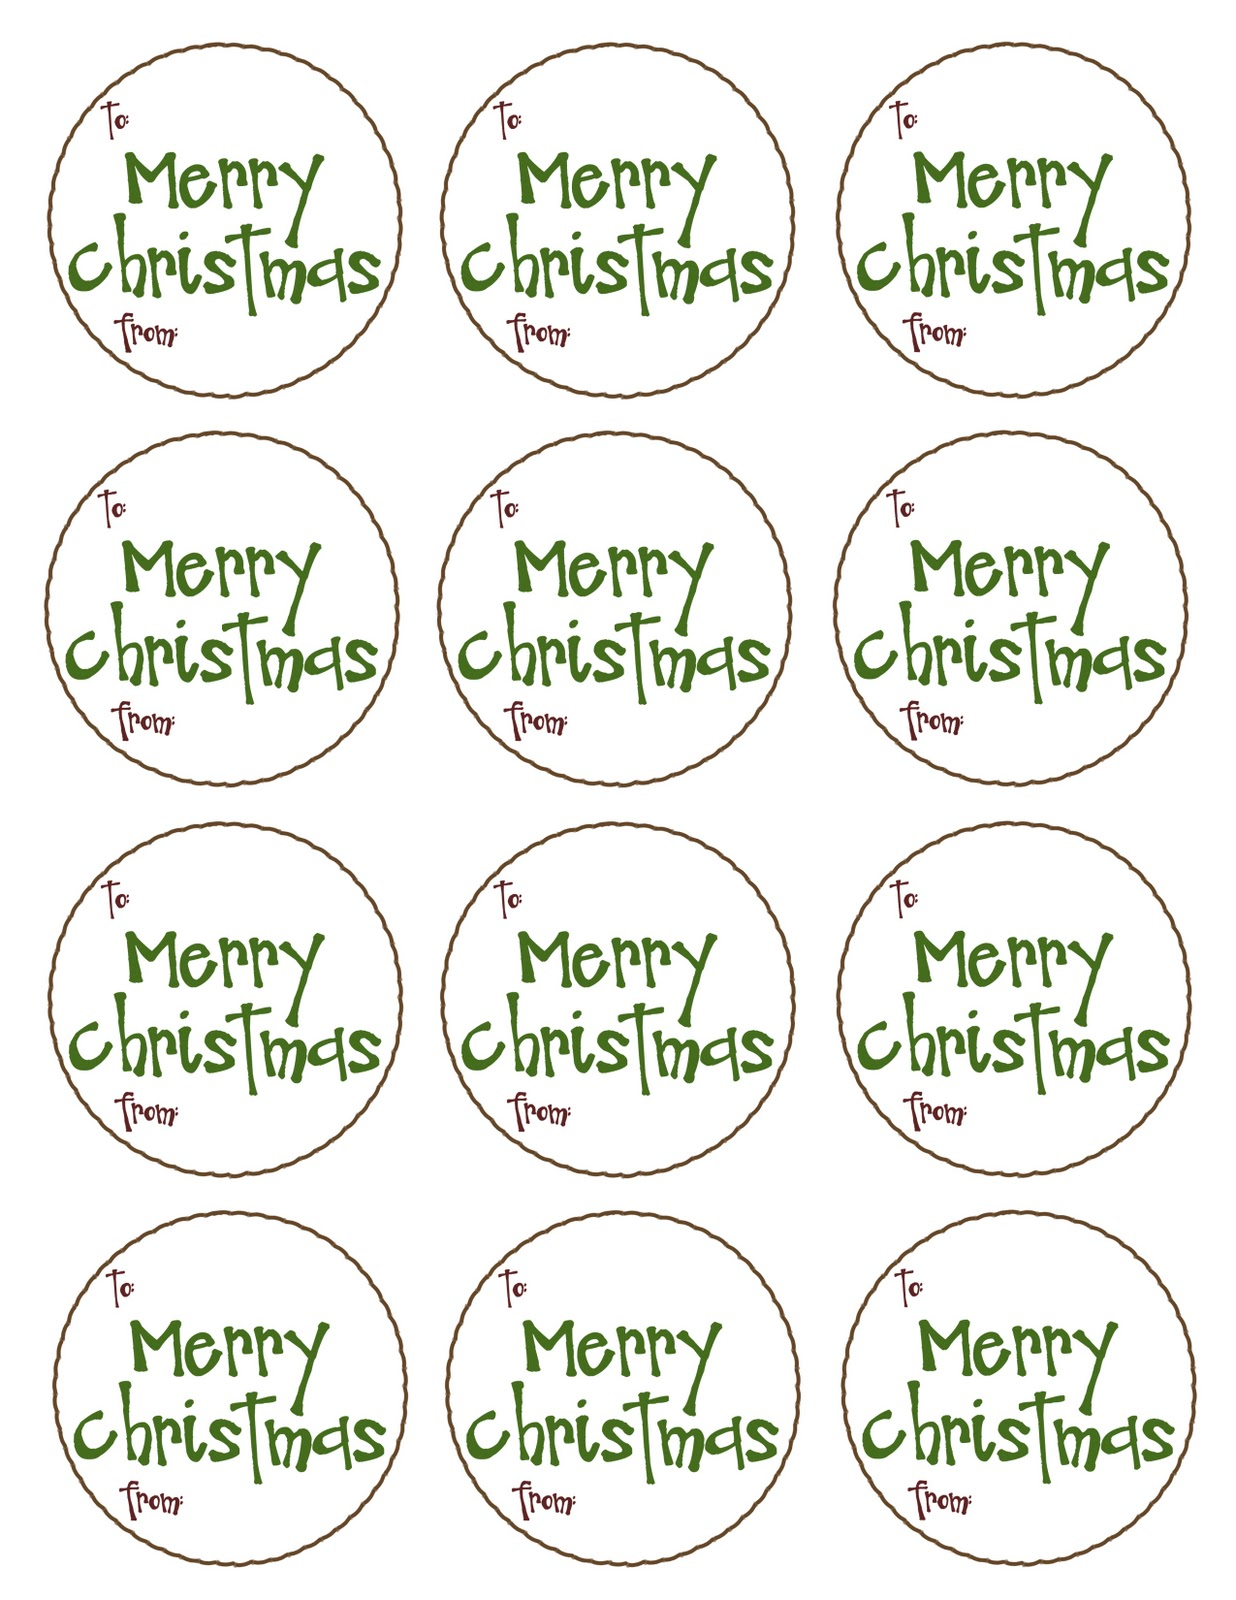 Sassy image with regard to merry christmas tags printable